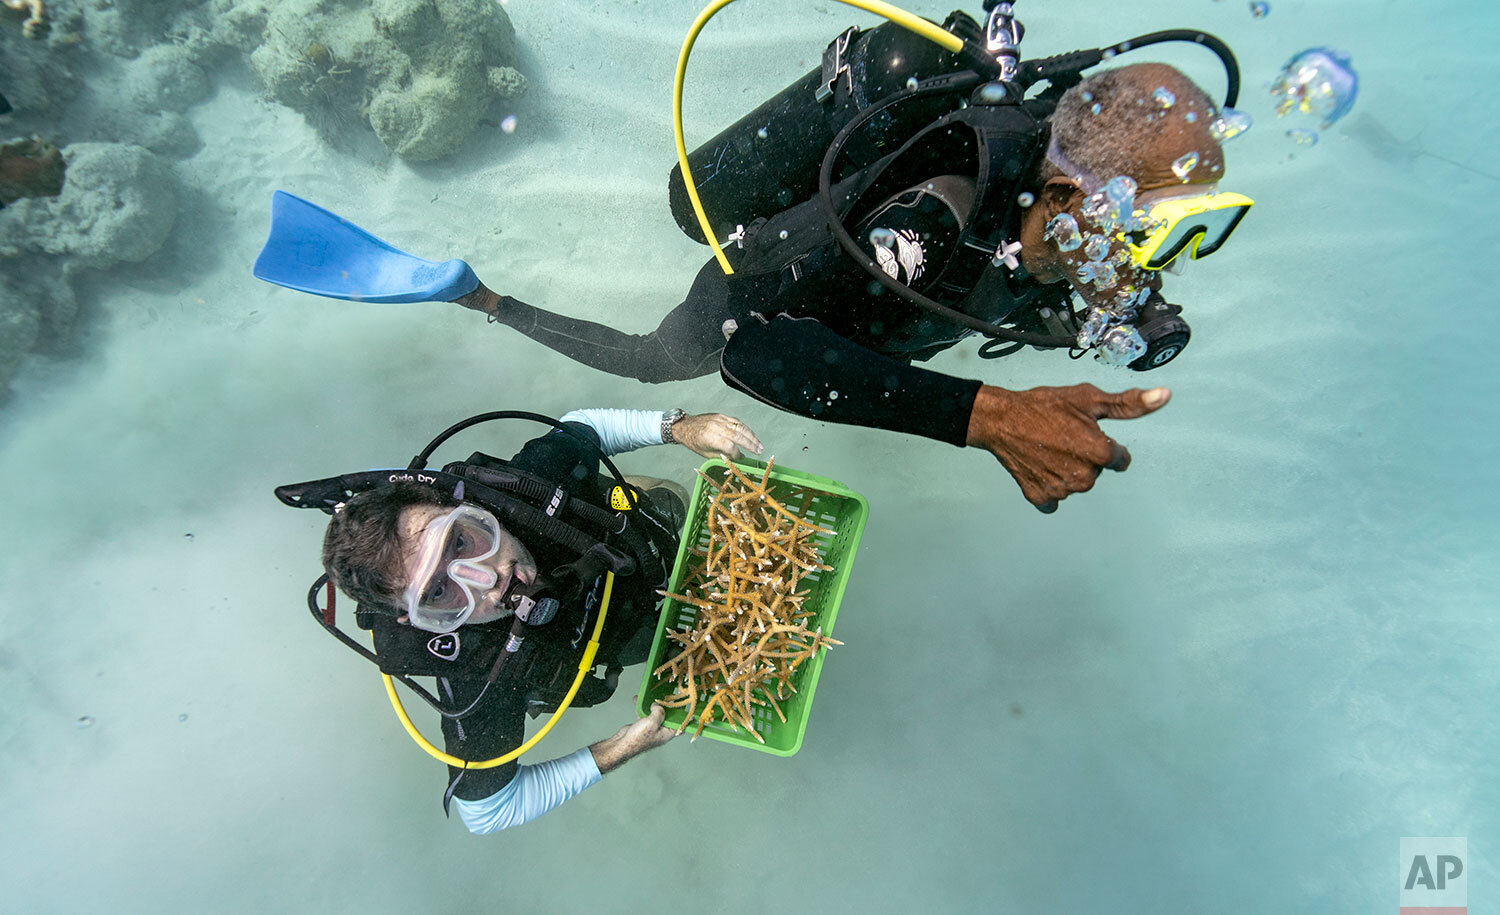 """Divers Everton Simpson, right, and Andrew Todd bring staghorn coral from a coral nursery to be planted inside the White River Fish Sanctuary Tuesday, Feb. 12, 2019, in Ocho Rios, Jamaica. When each stub grows to about the size of a human hand, Simpson collects them in a crate to individually """"transplant"""" onto a reef, a process akin to planting each blade of grass in a lawn separately. (AP Photo/David J. Phillip)"""